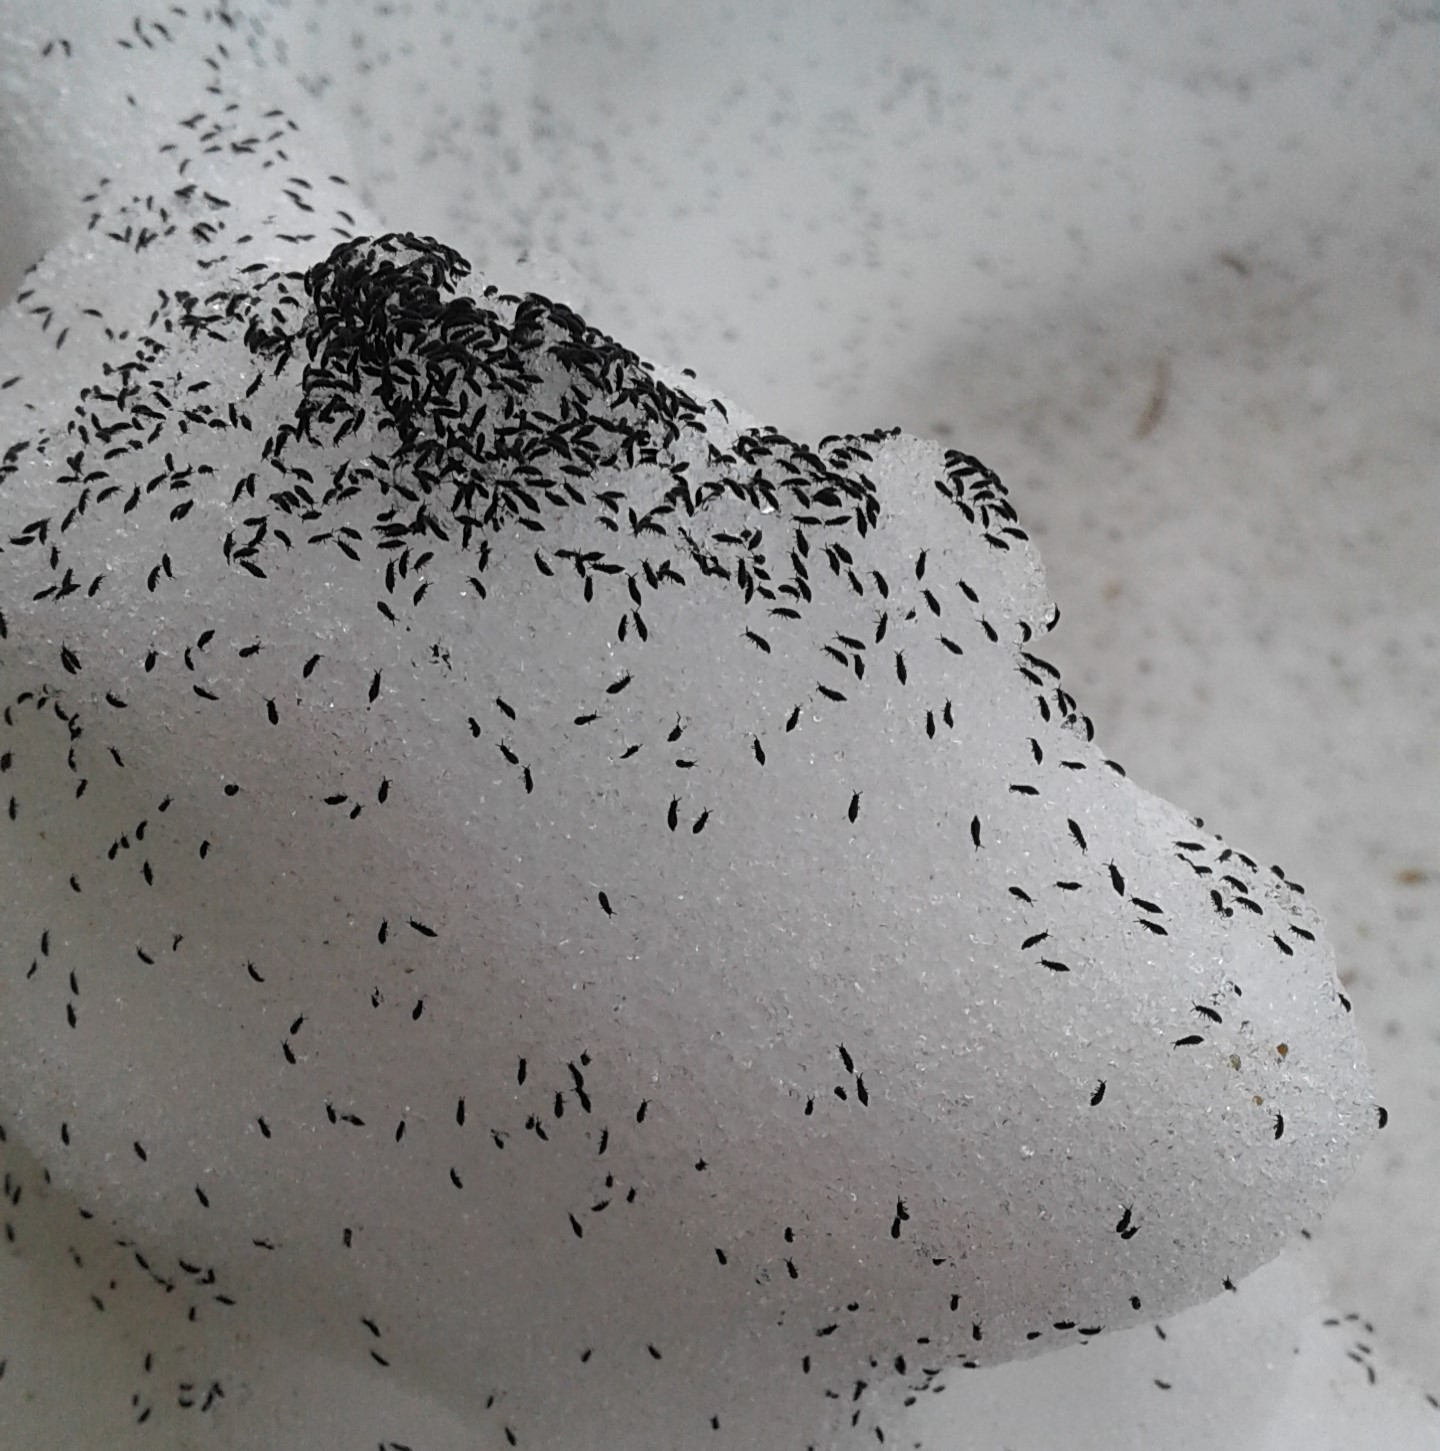 Millions Of Tiny Bugs Cover Snow In Central Ny What The Heck Are